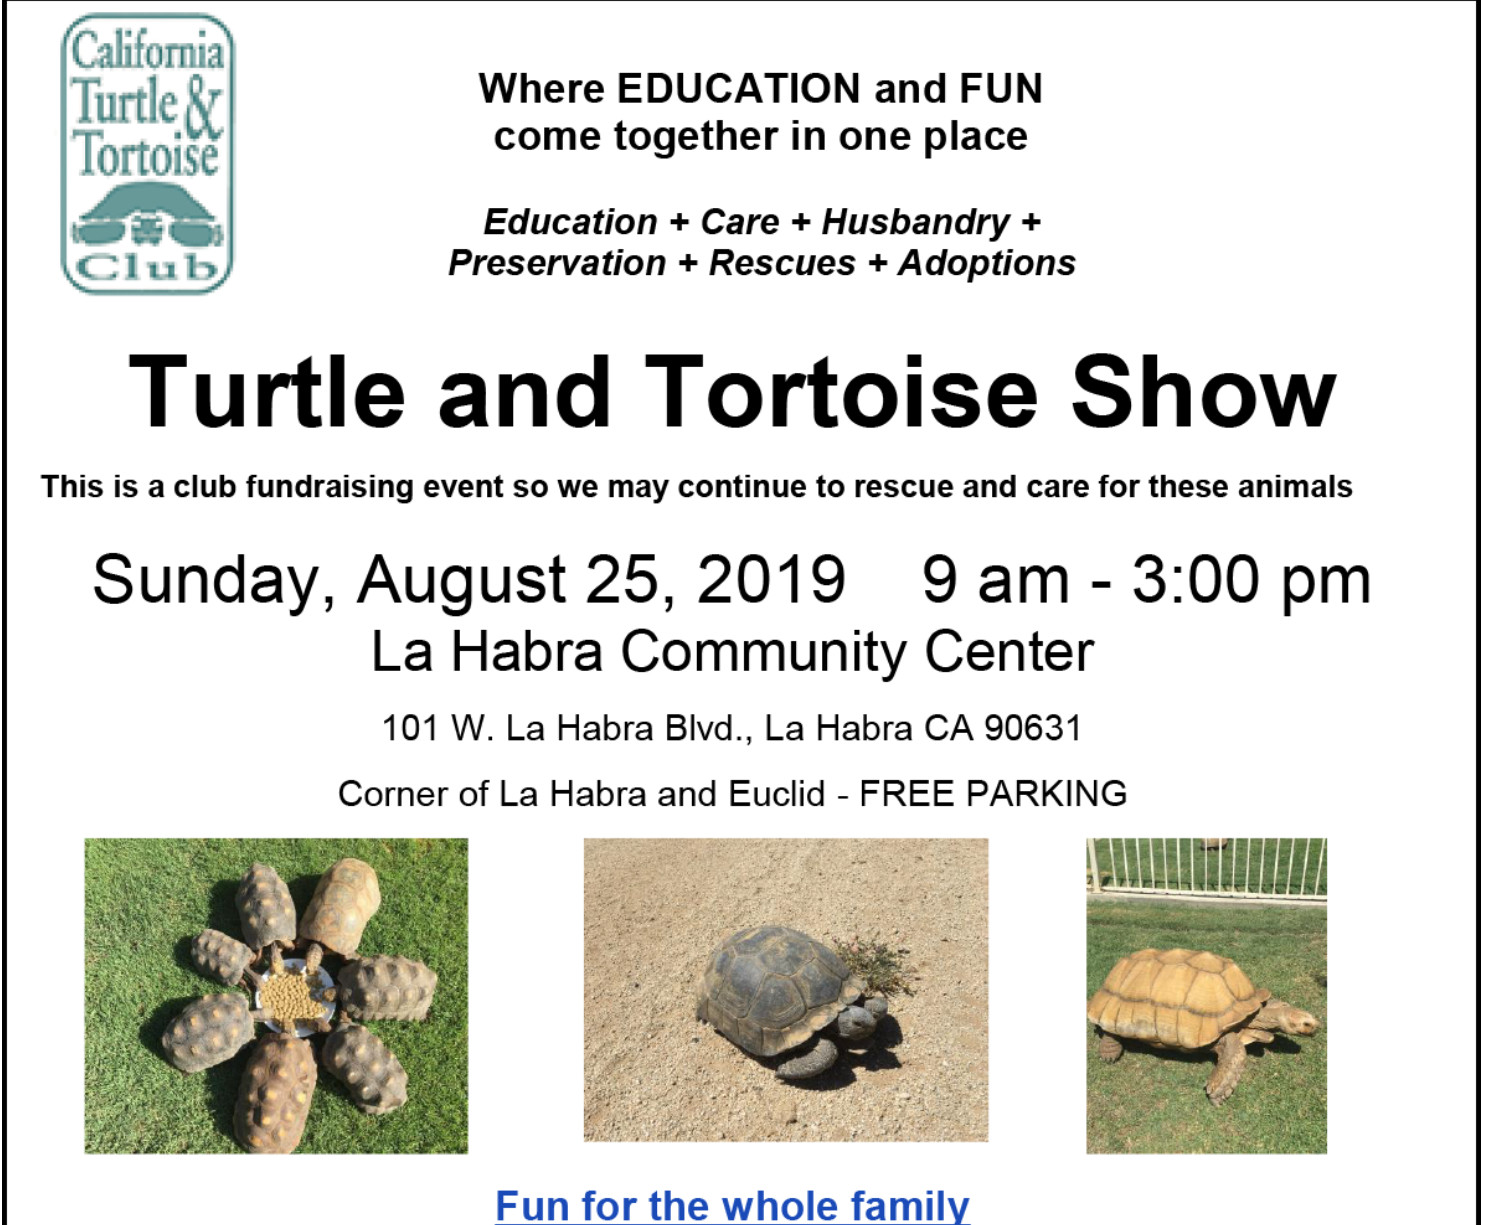 Turtle and Tortoise Show - Petfinder Event Calendar